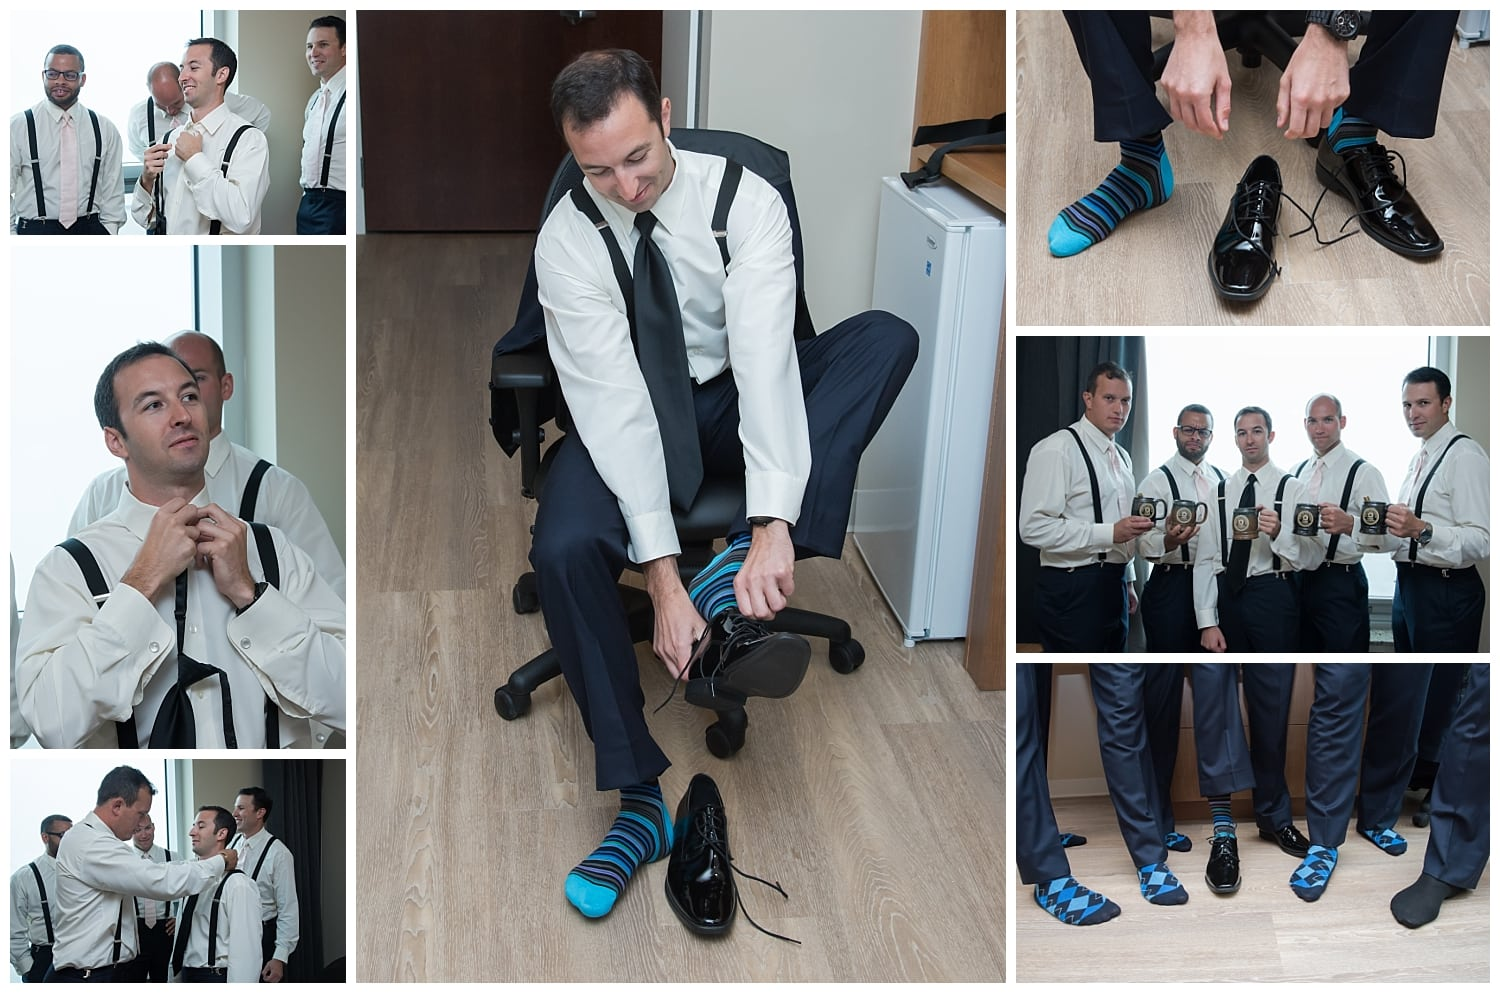 The groom with groomsmen getting ready at the Halifax Delta Hotel.